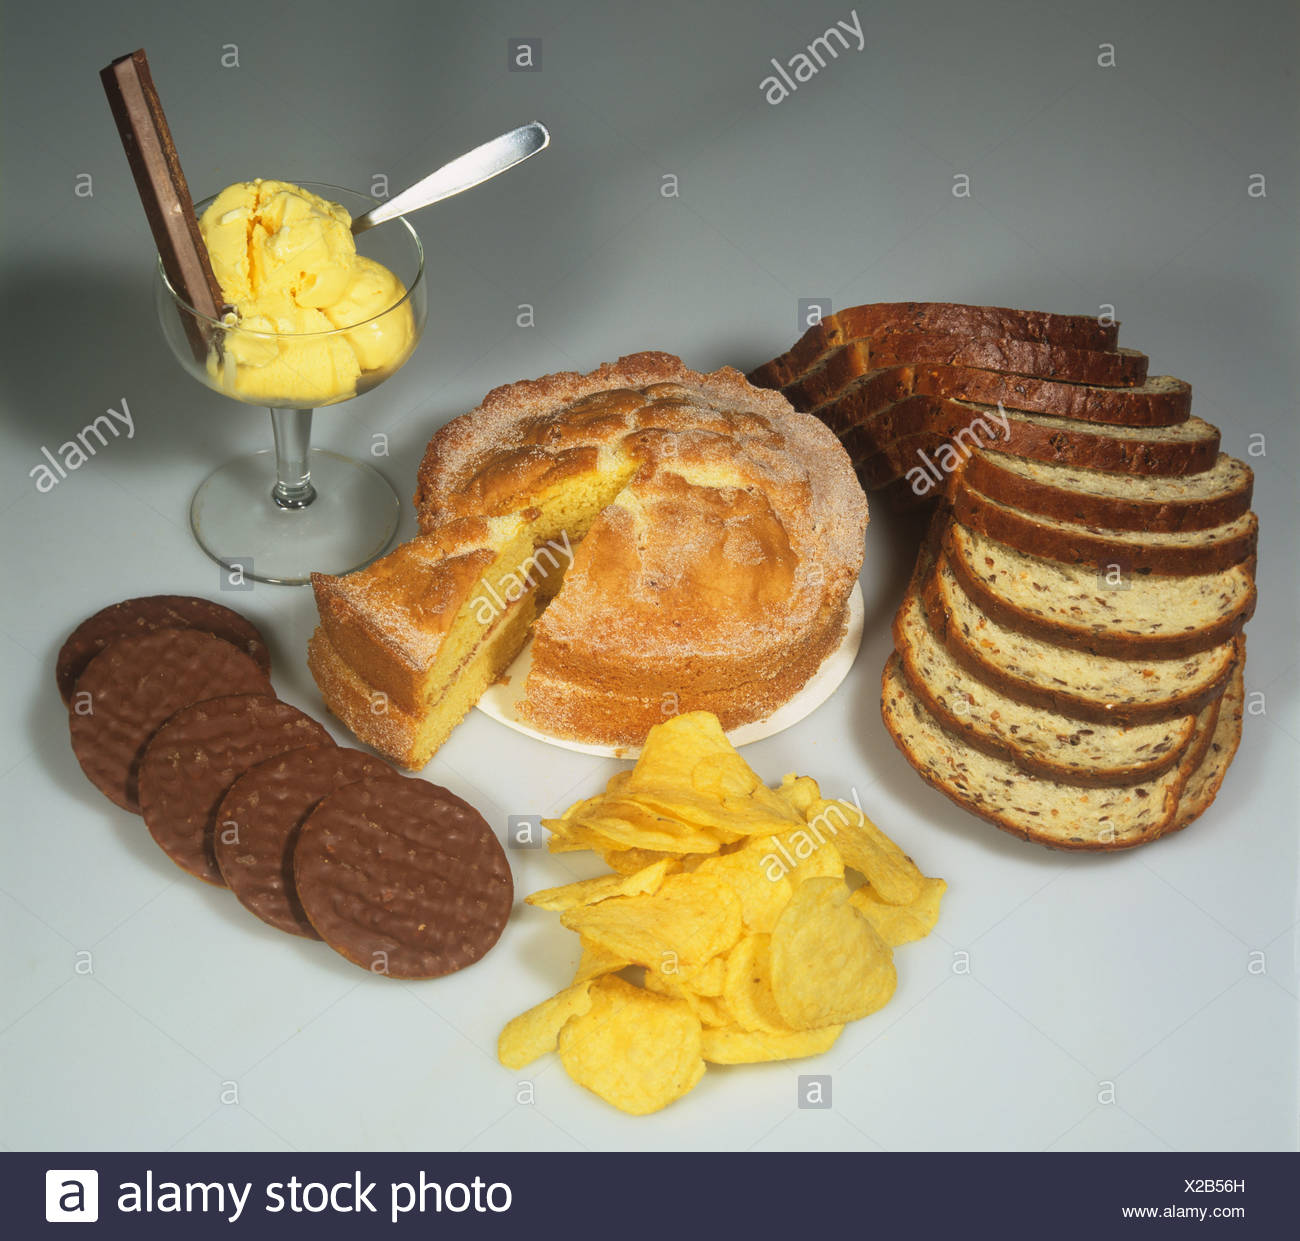 High energy high carbohydrate foods including cake biscuits bread potato crisps chocolate - Stock Image